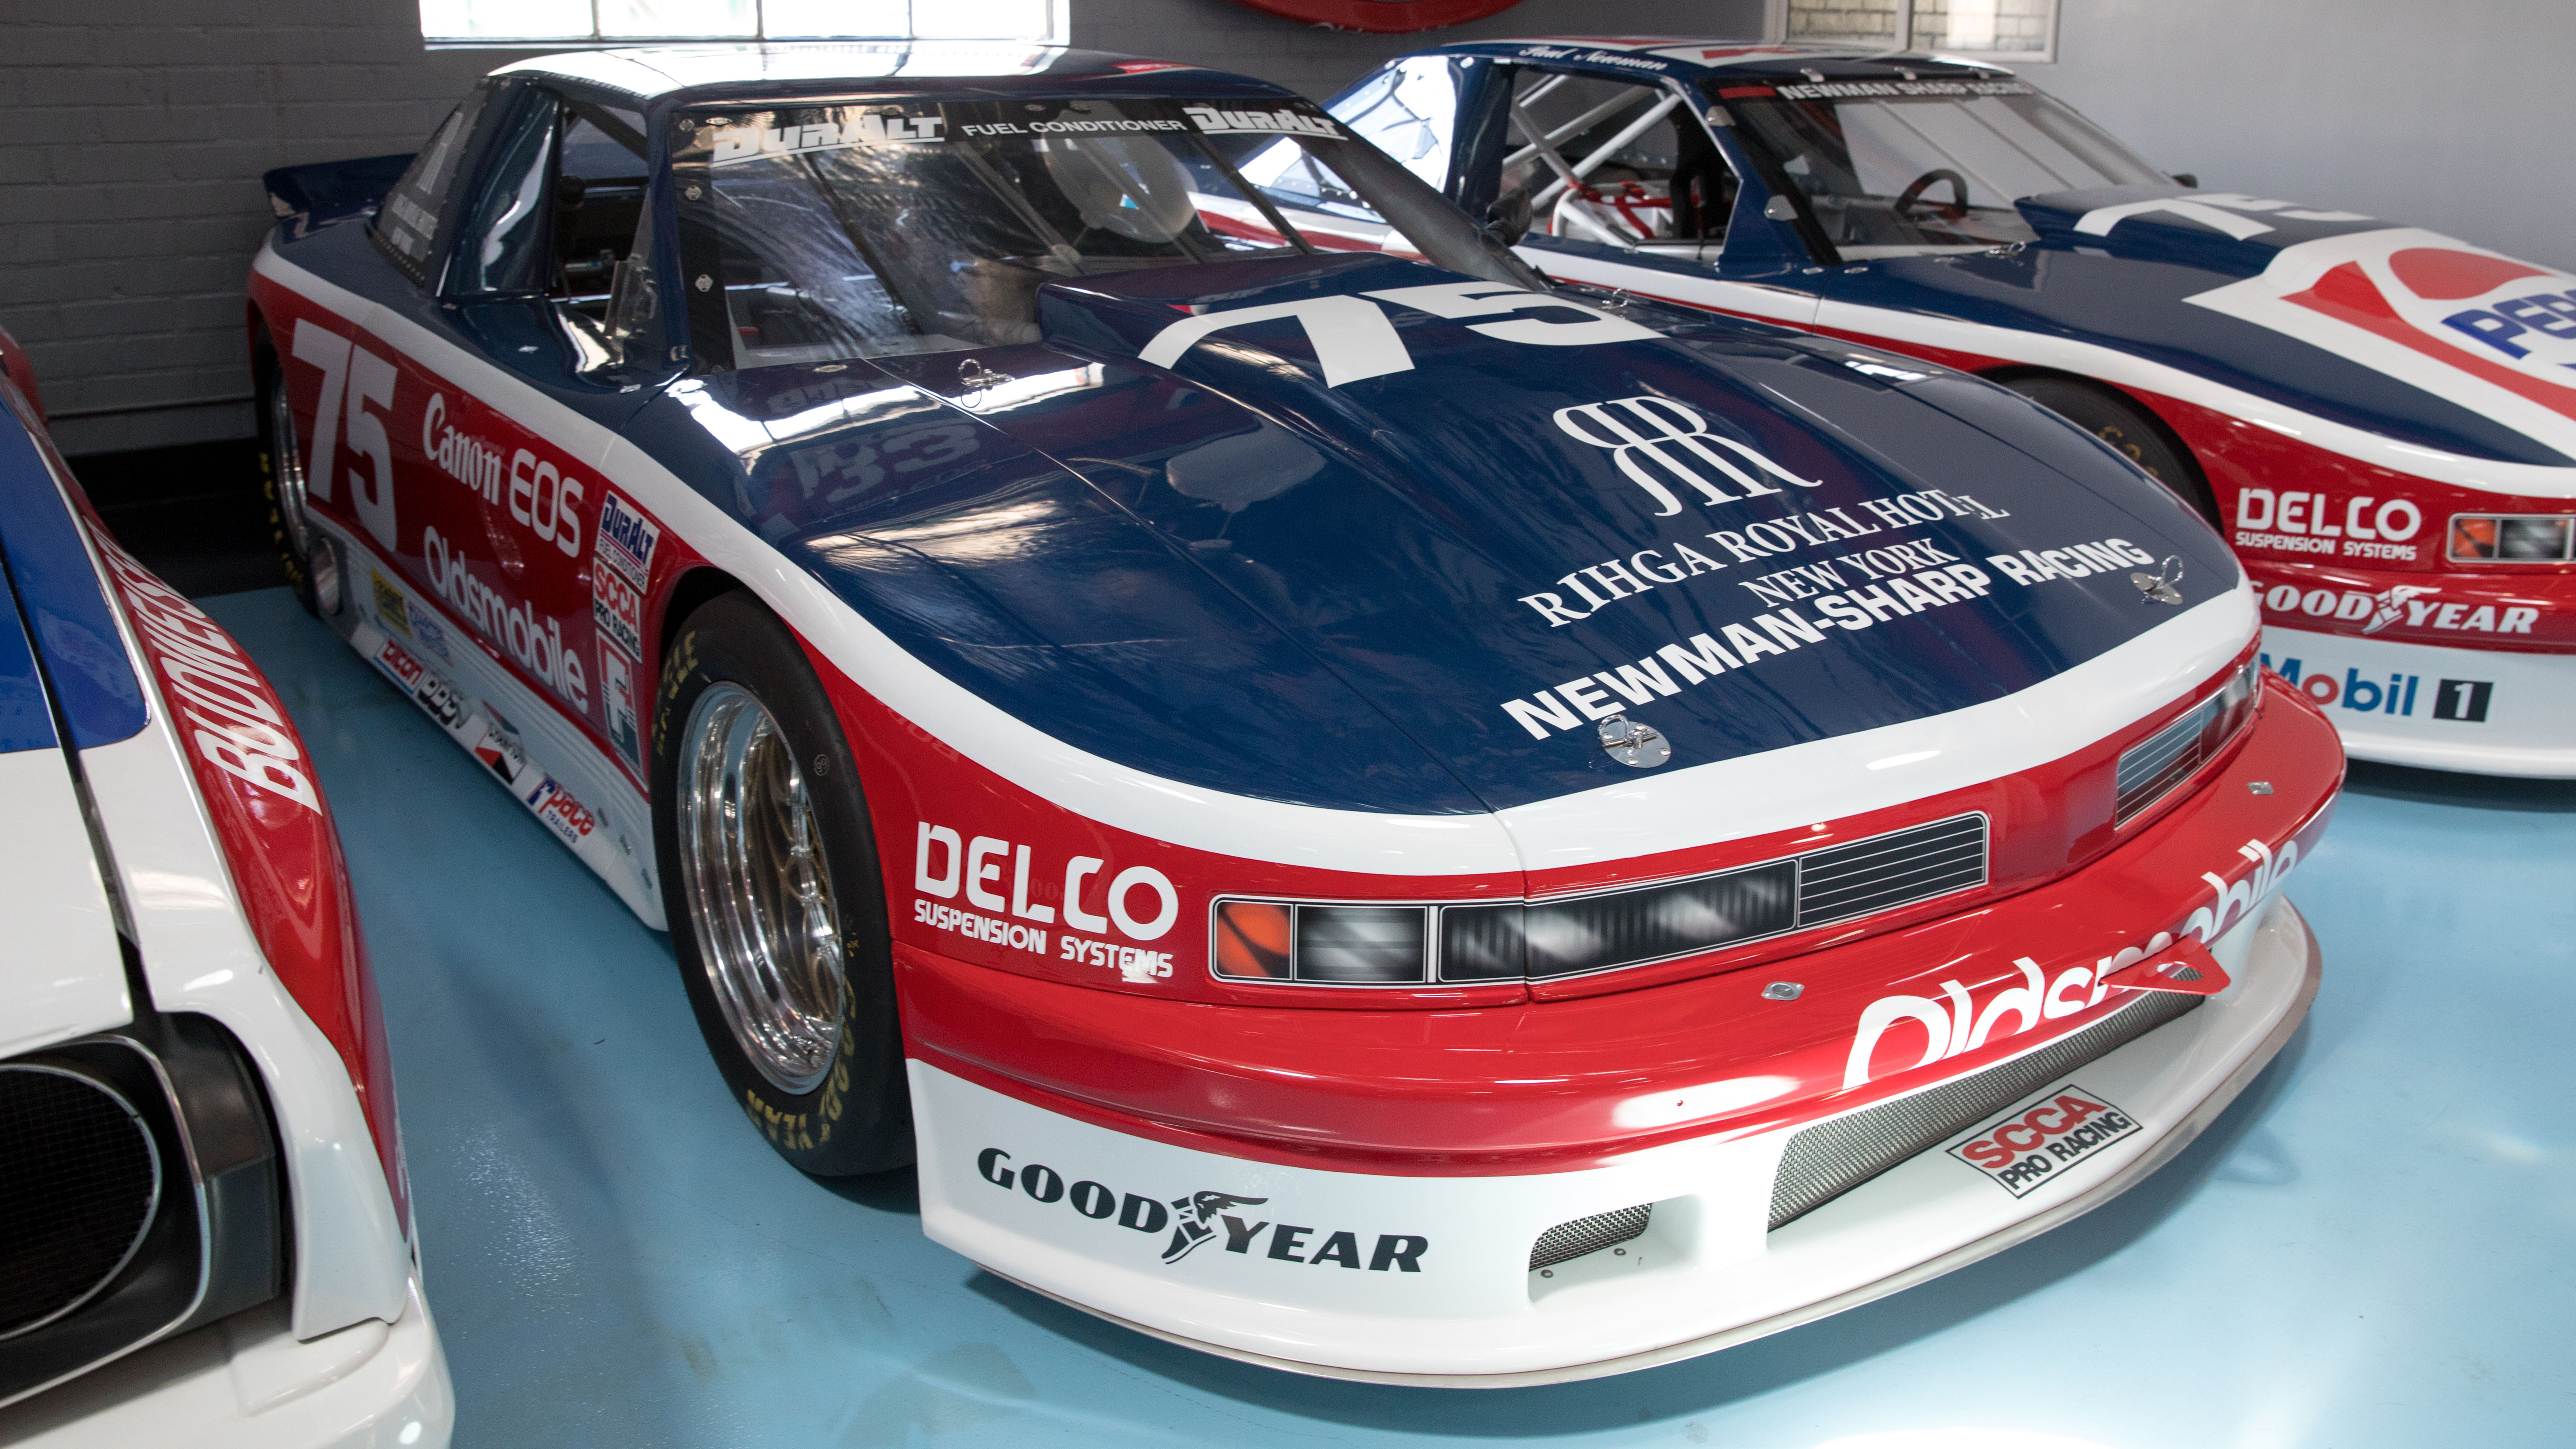 Marvel at Paul Newman's racing cars, including a 933bhp Nissan | Top